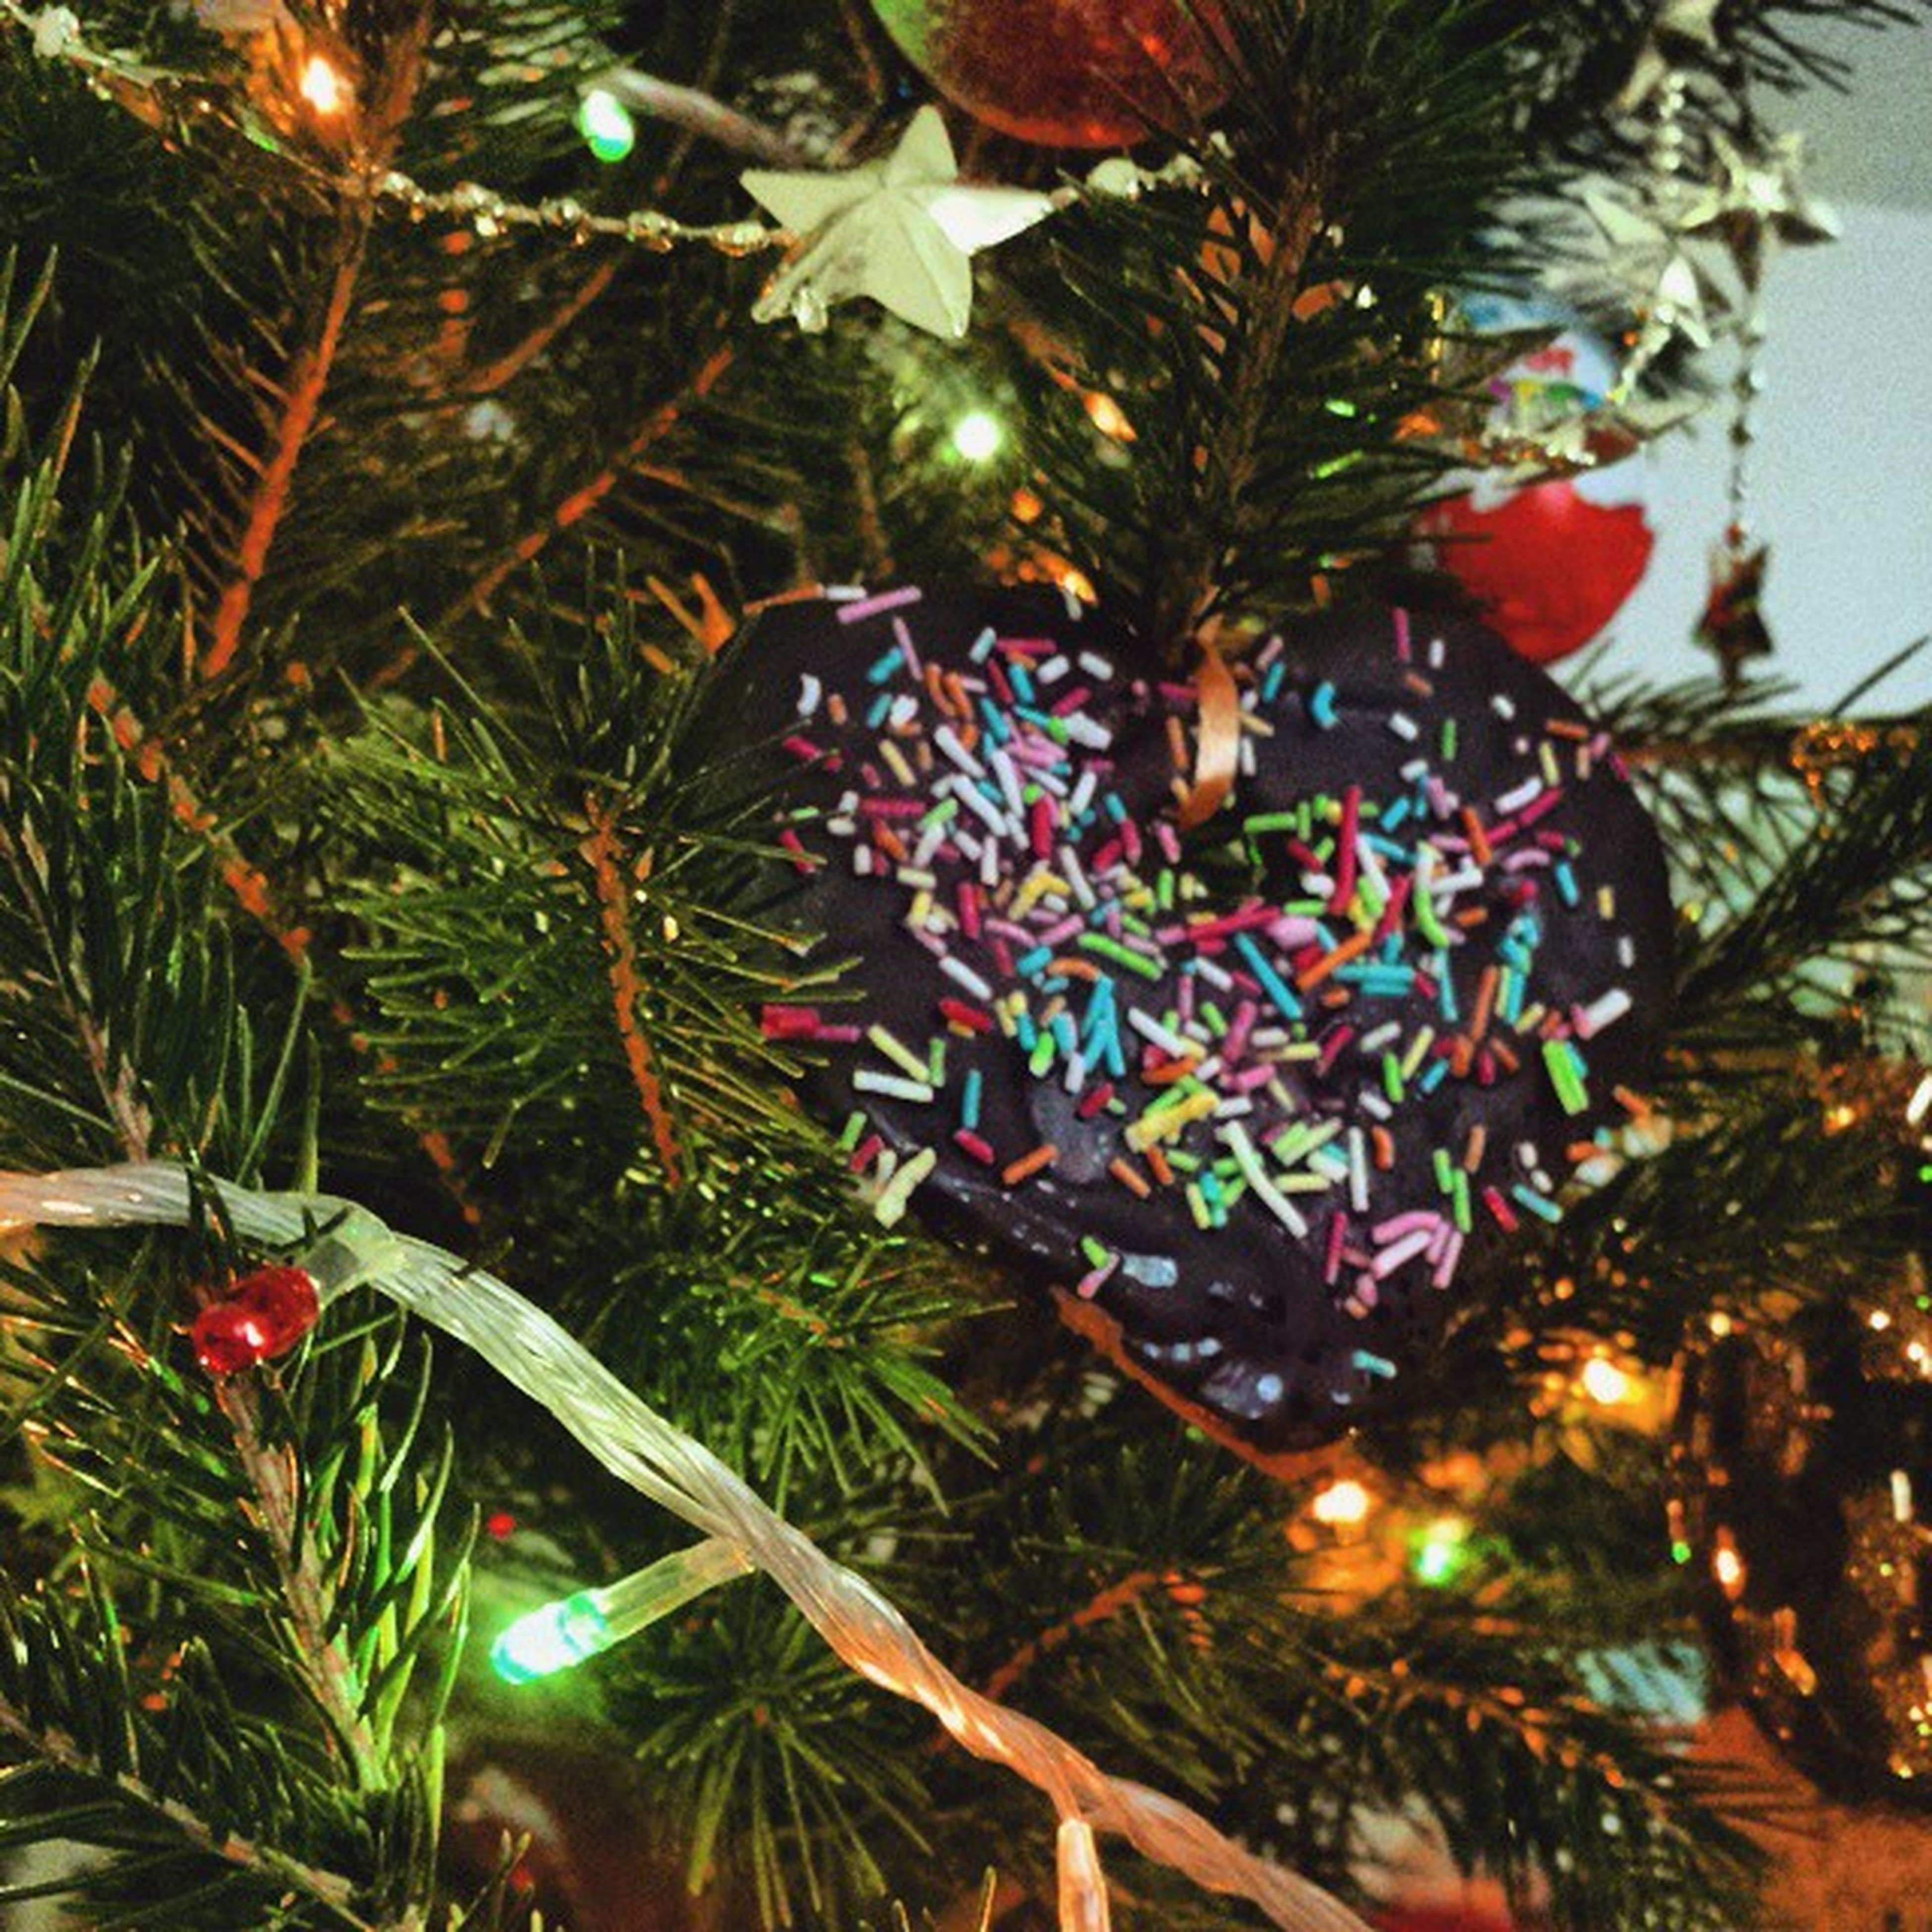 low angle view, tree, celebration, multi colored, palm tree, growth, christmas, decoration, christmas tree, leaf, branch, christmas decoration, illuminated, outdoors, nature, hanging, no people, christmas lights, beauty in nature, colorful